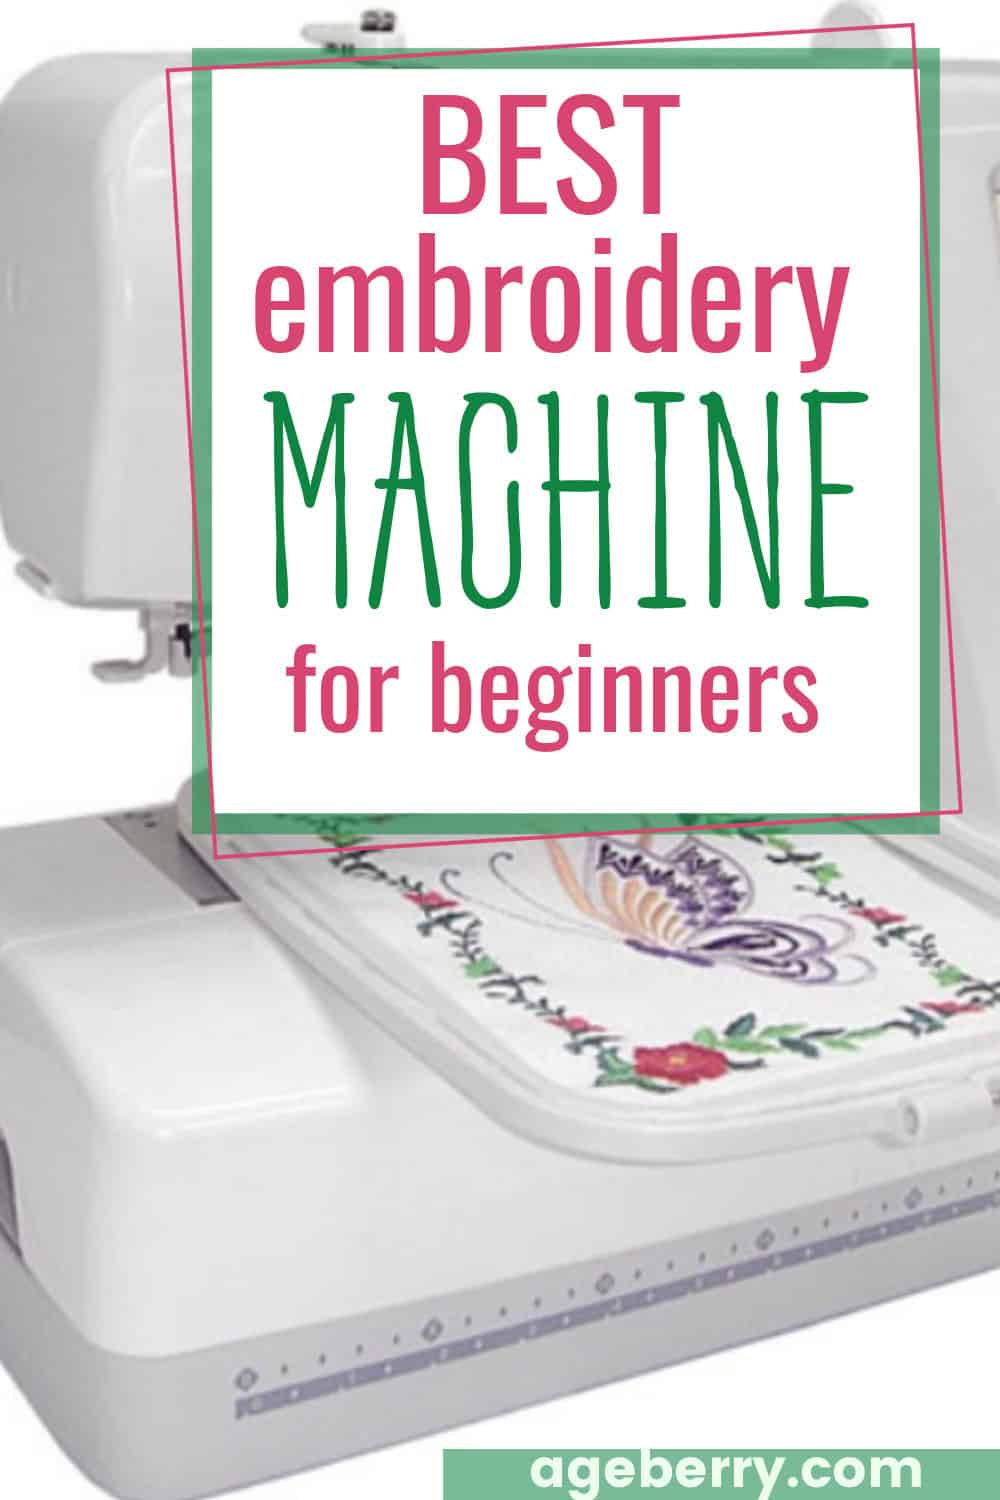 embroidery machine for beginners guide